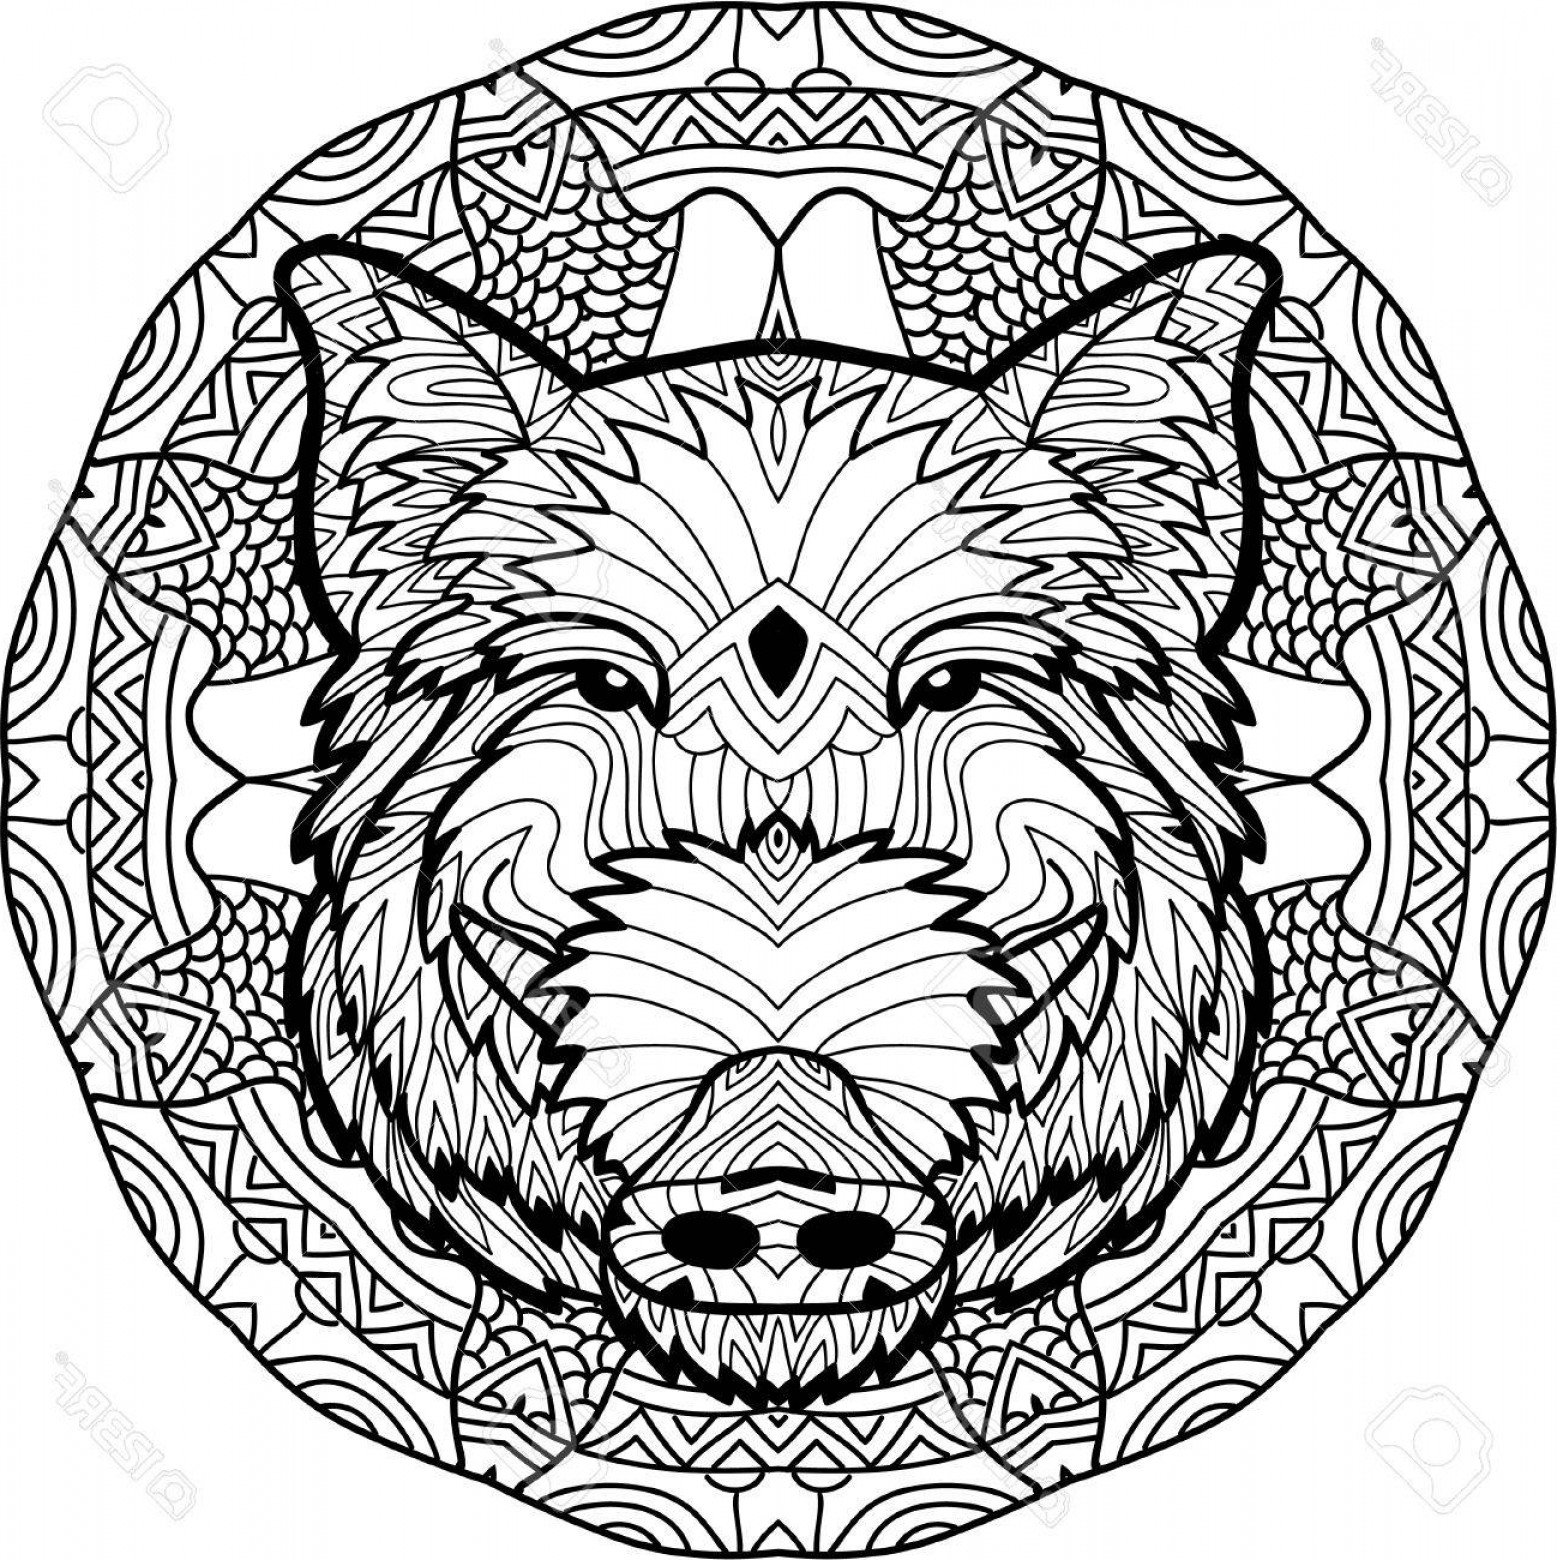 Razorback Vector Mandala: Photostock Vector Monochrome Drawing With National Patterns Painted The Boar On The Background Tribal Mandala Patterns